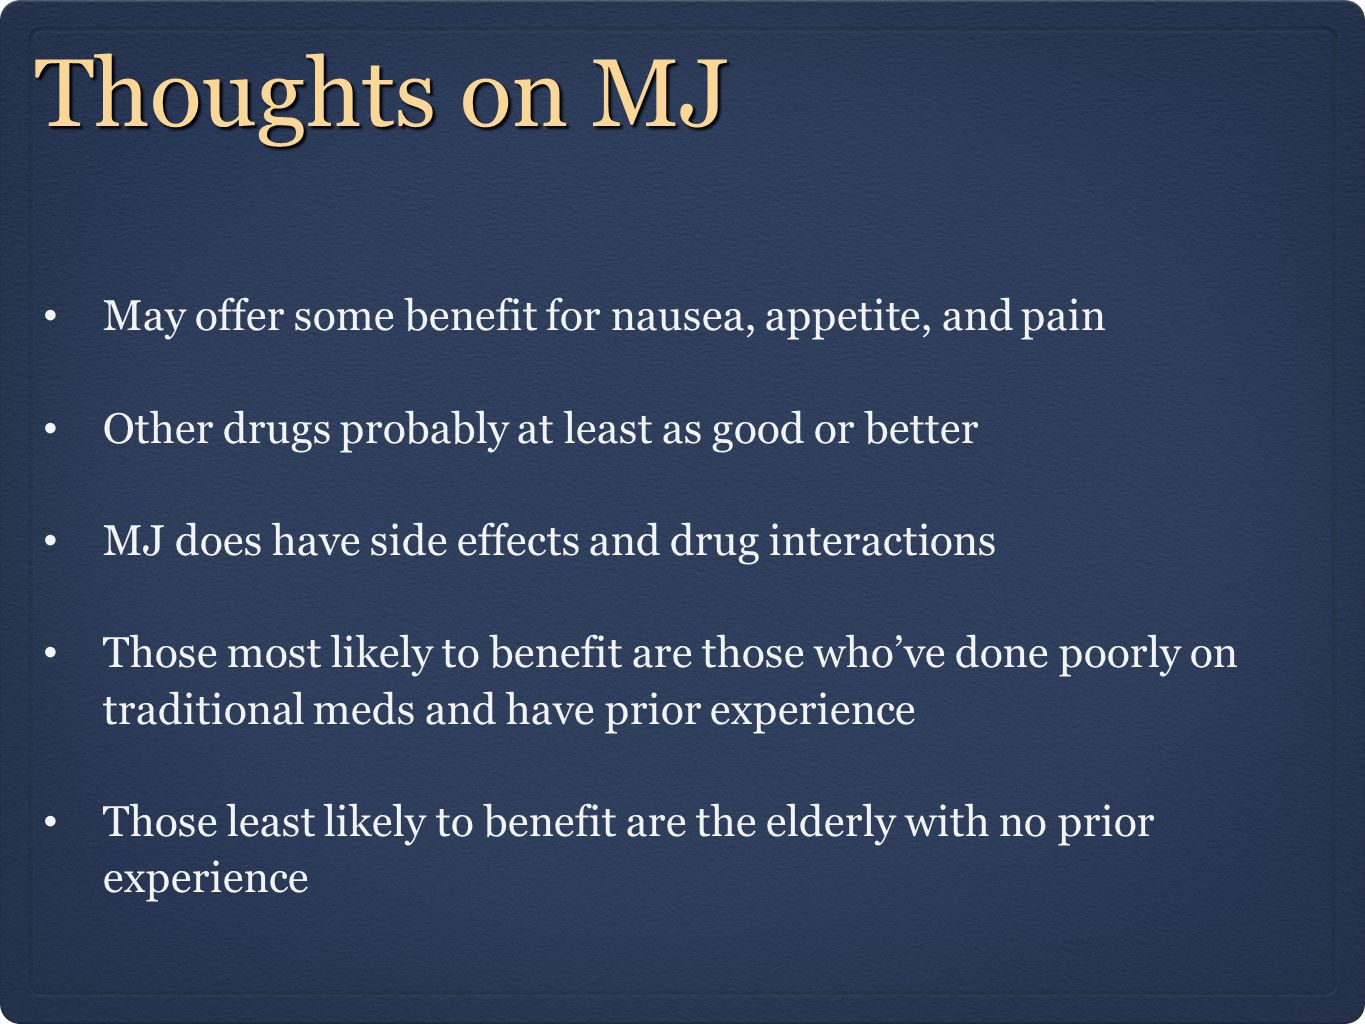 Thoughts on MJ May offer some benefit for nausea, appetite, and pain